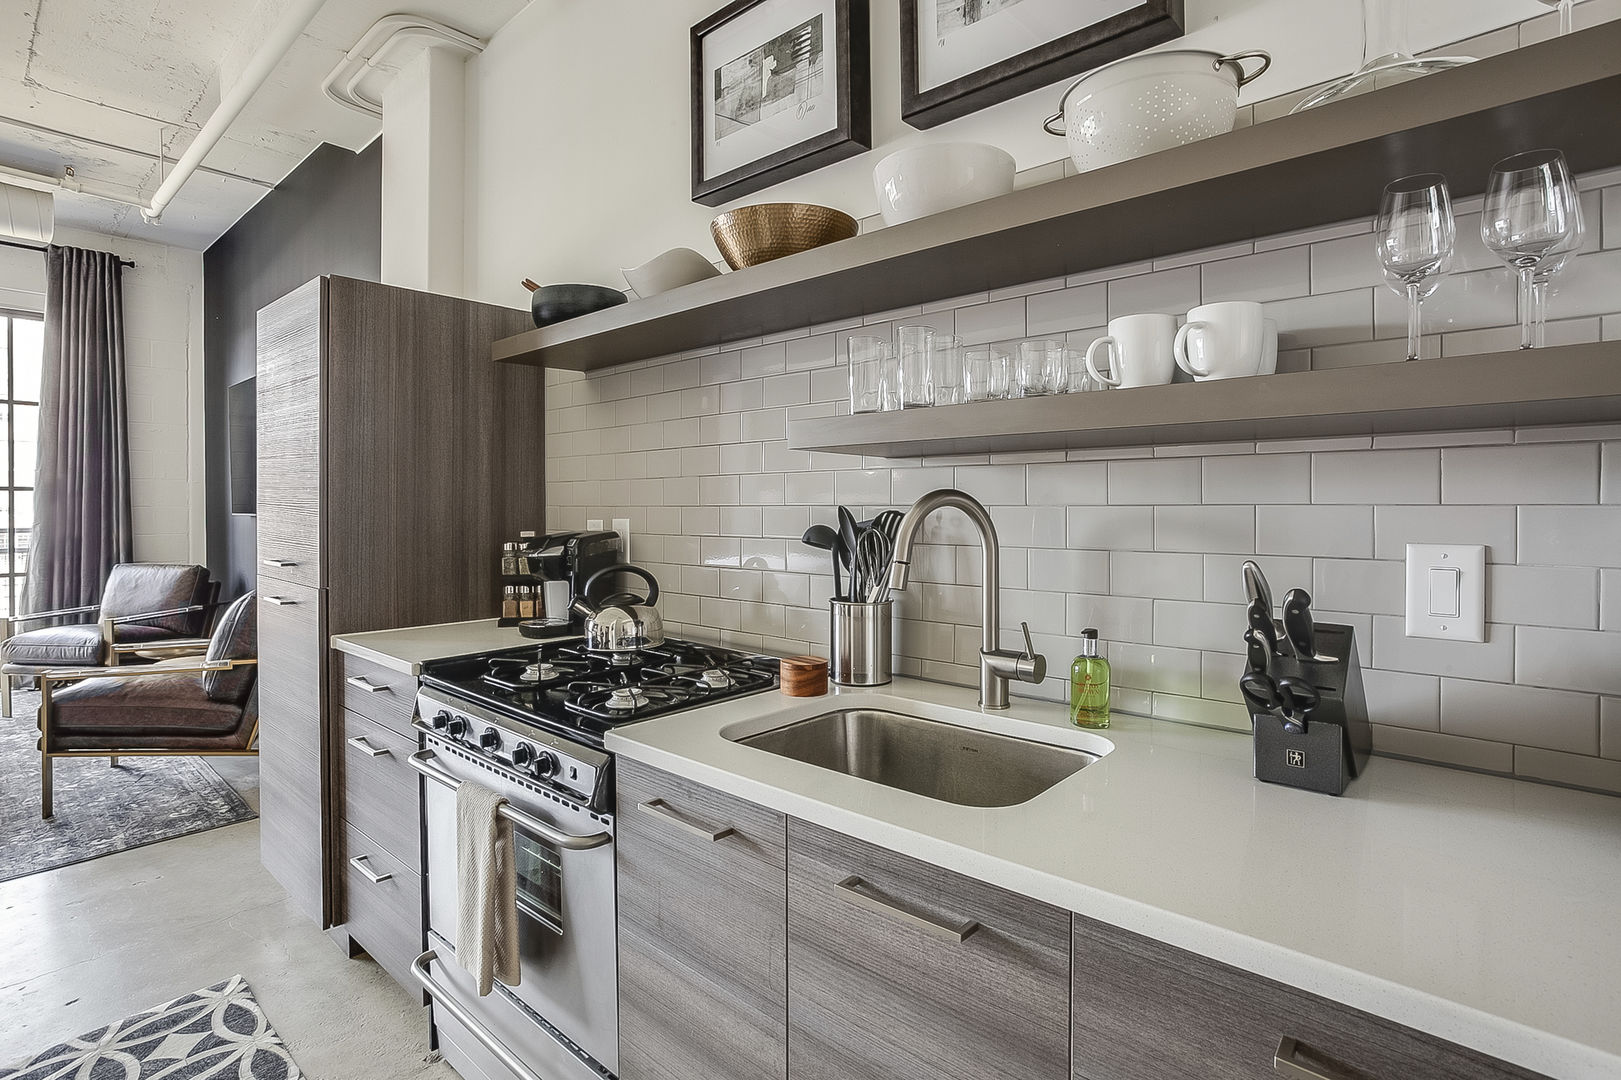 Kitchen with sink and oven